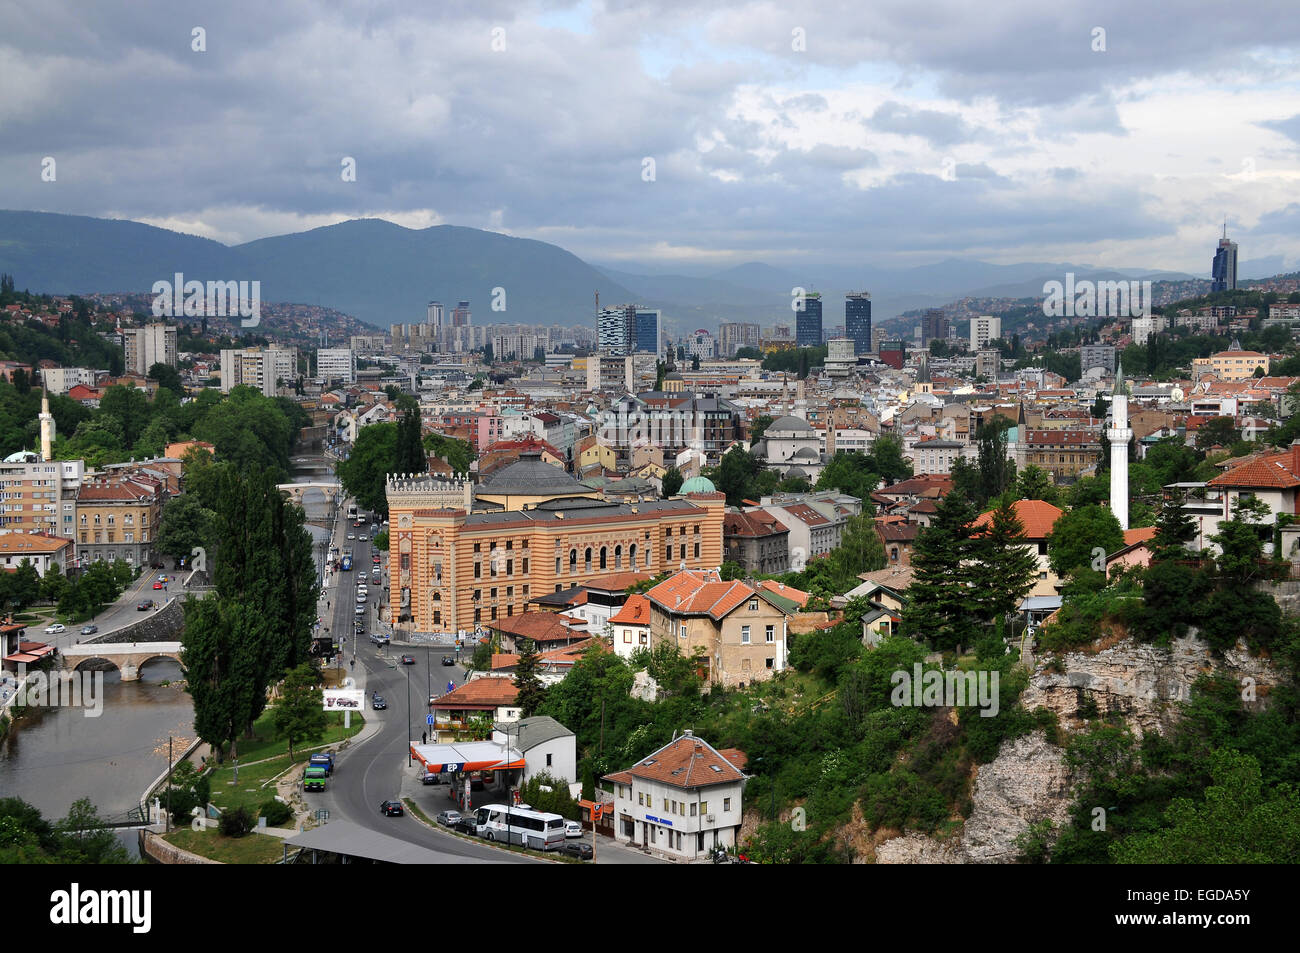 View of Sarajevo from the east, Sarajevo, Bosnia and Herzegovina - Stock Image